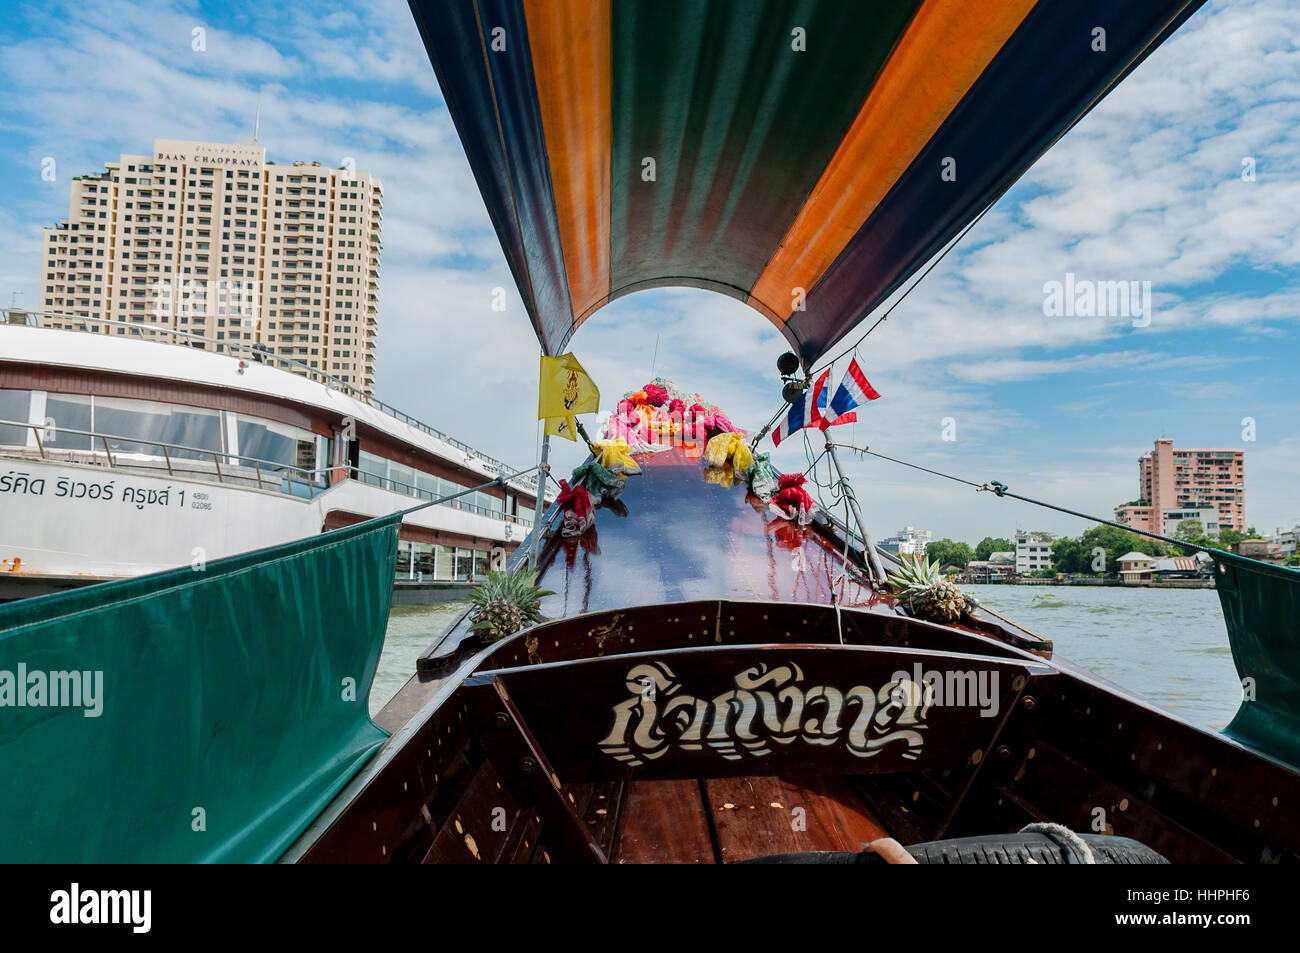 An open-air motorized boat headed down the Chao Phraya River in Bangkok for a tour of the waterways. - Stock Image